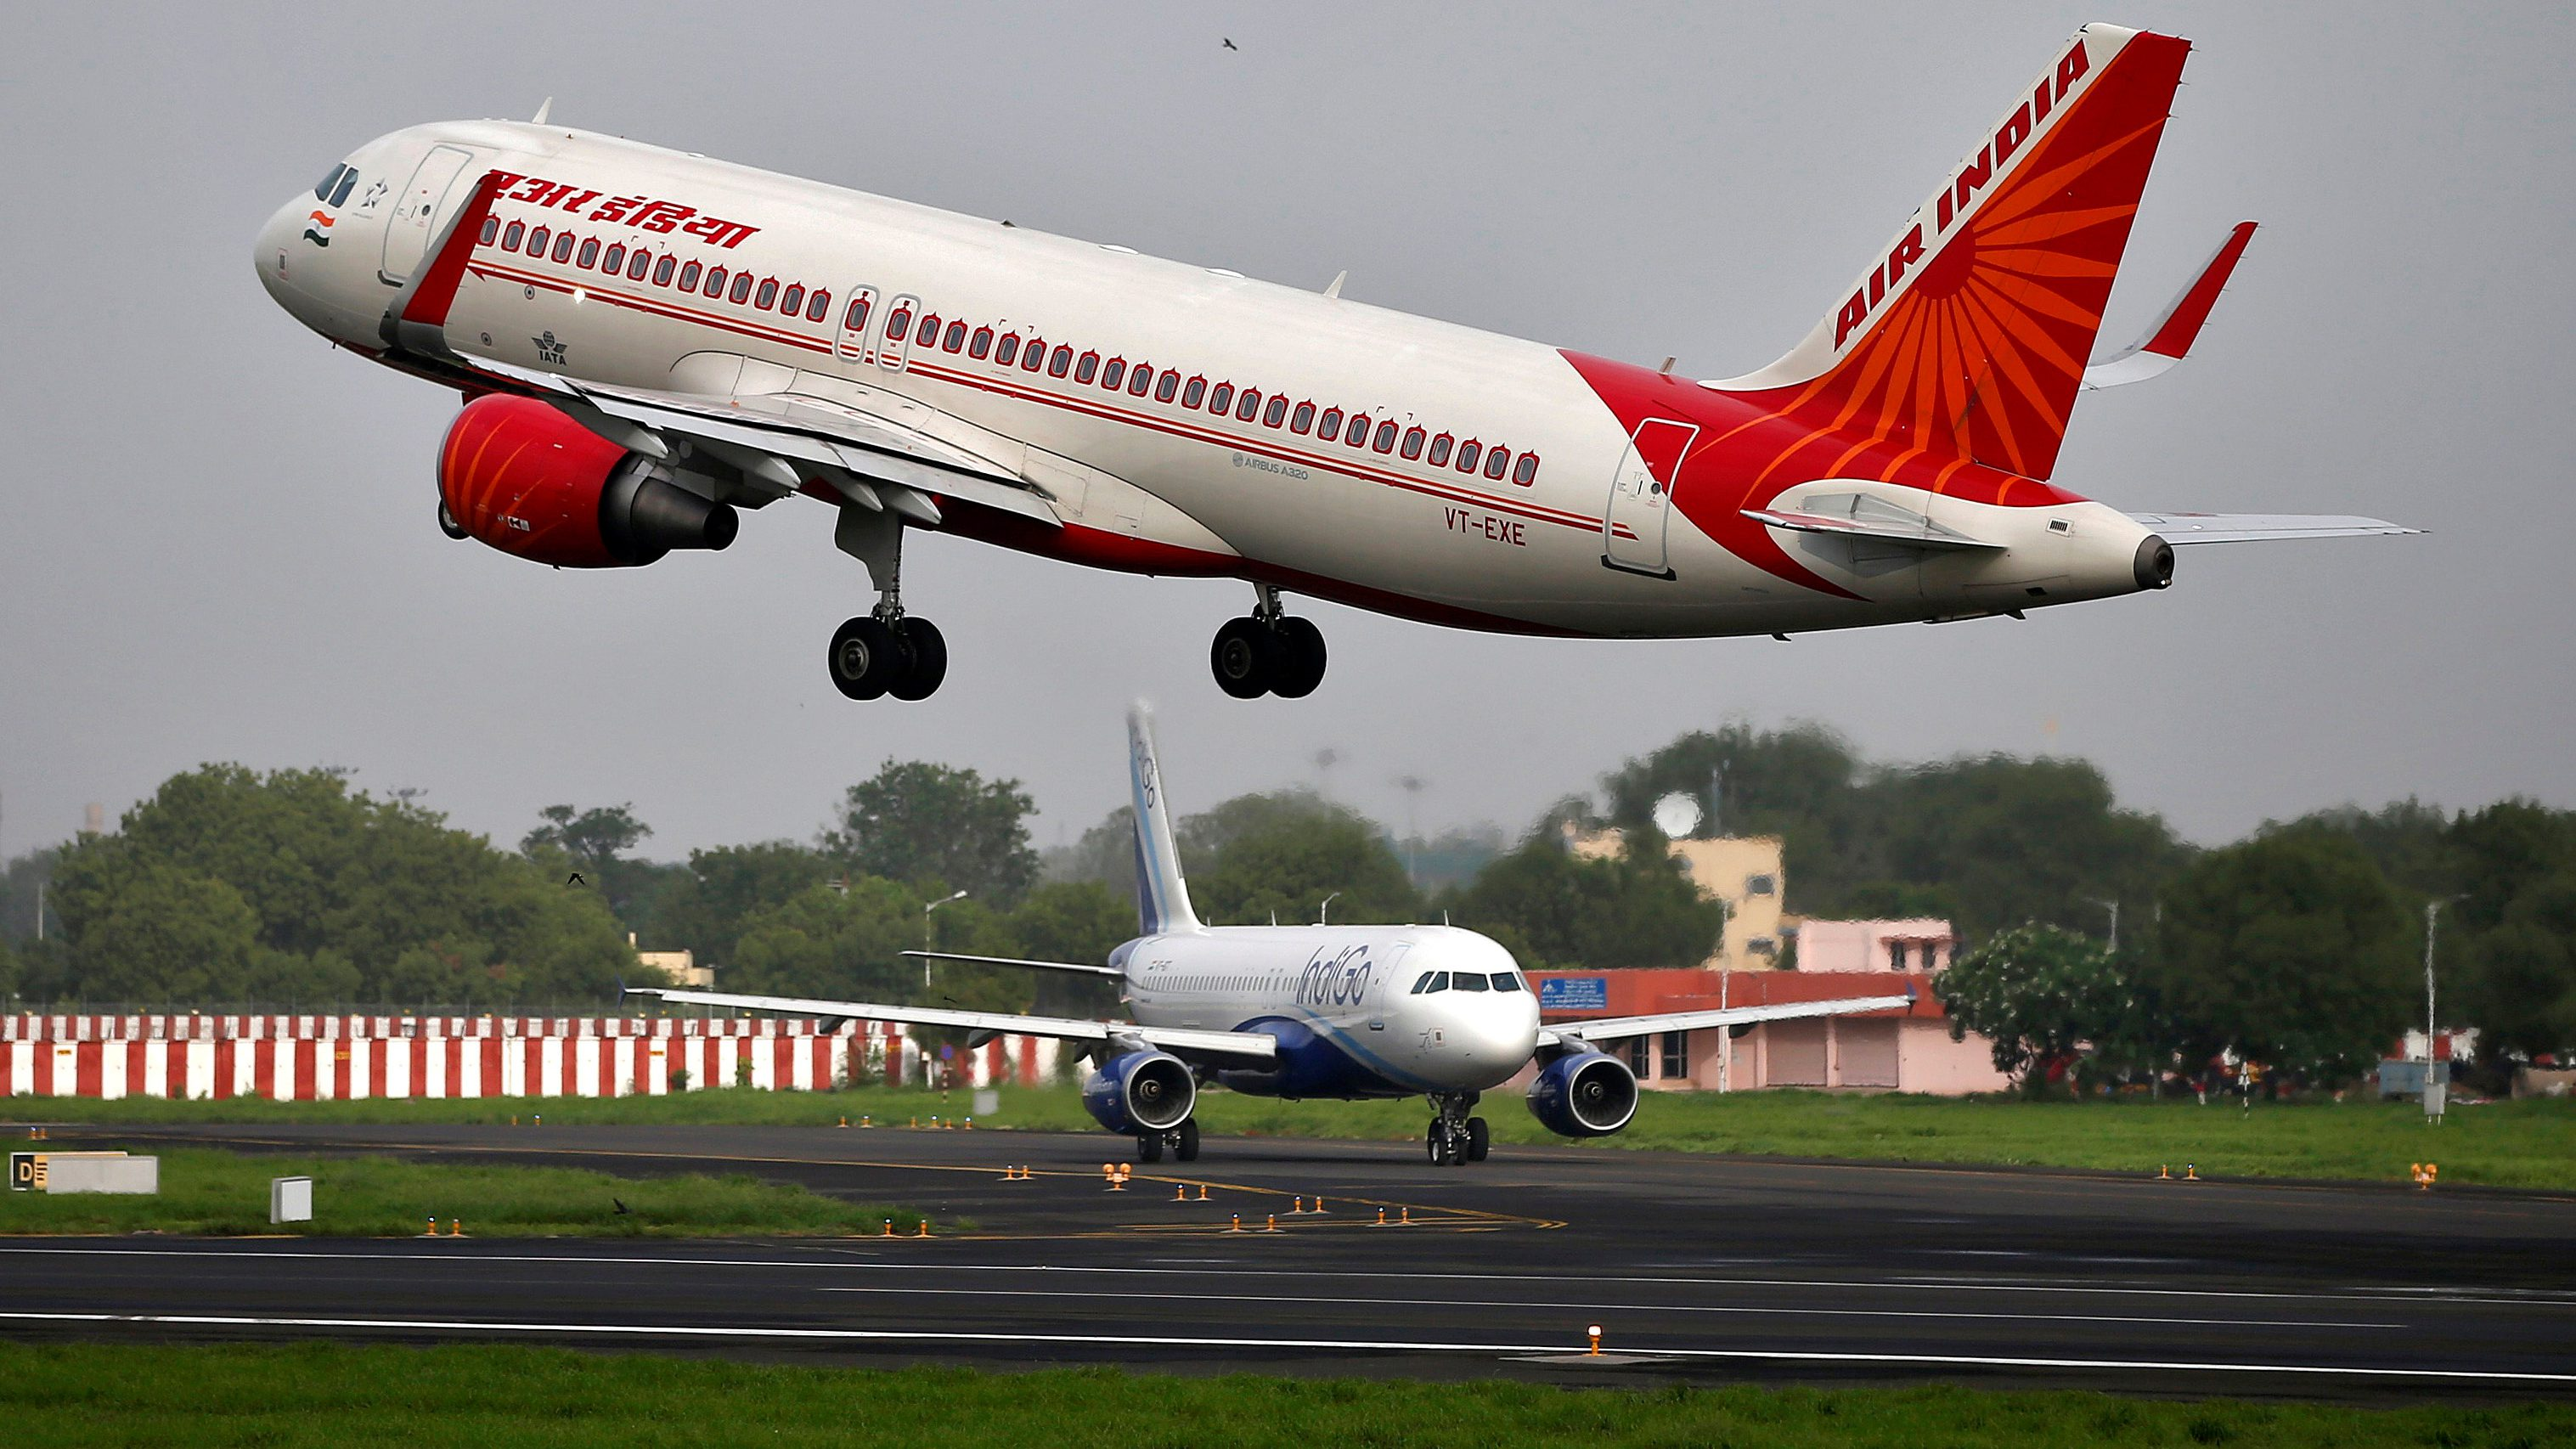 An Air India aircraft takes off as an IndiGo Airlines aircraft waits for clearance at the Sardar Vallabhbhai Patel International Airport in Ahmedabad, India, July 7, 2017. Picture taken July 7, 2017. To match Analysis AIR INDIA-PRIVATISATION/  REUTERS/Amit Dave - RC1DEE6C5CC0